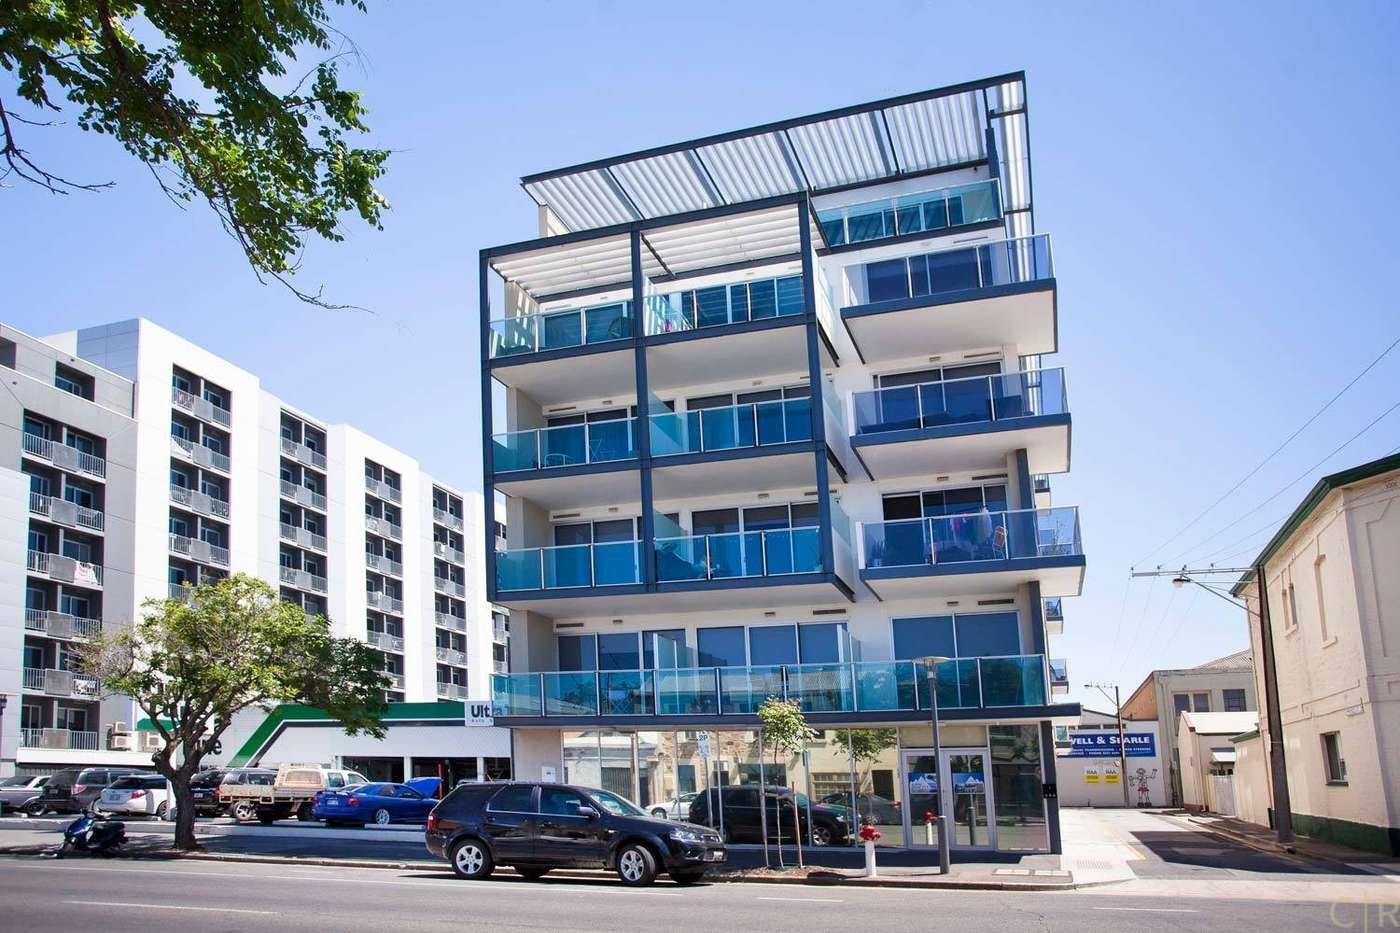 Main view of Homely apartment listing, 305/288 Waymouth Street, Adelaide, SA 5000